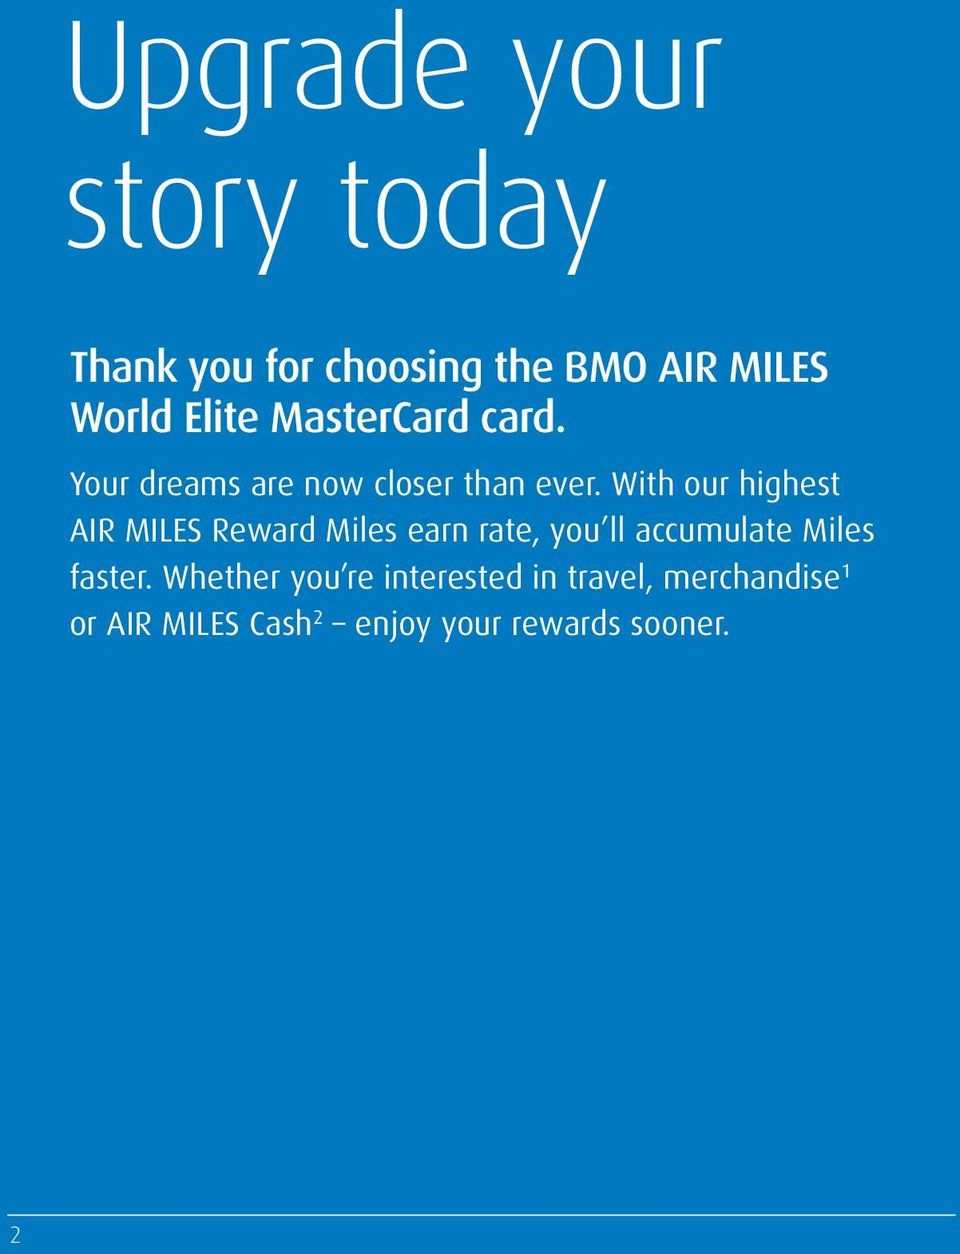 With our highest AIR MILES Reward Miles earn rate, you ll accumulate Miles